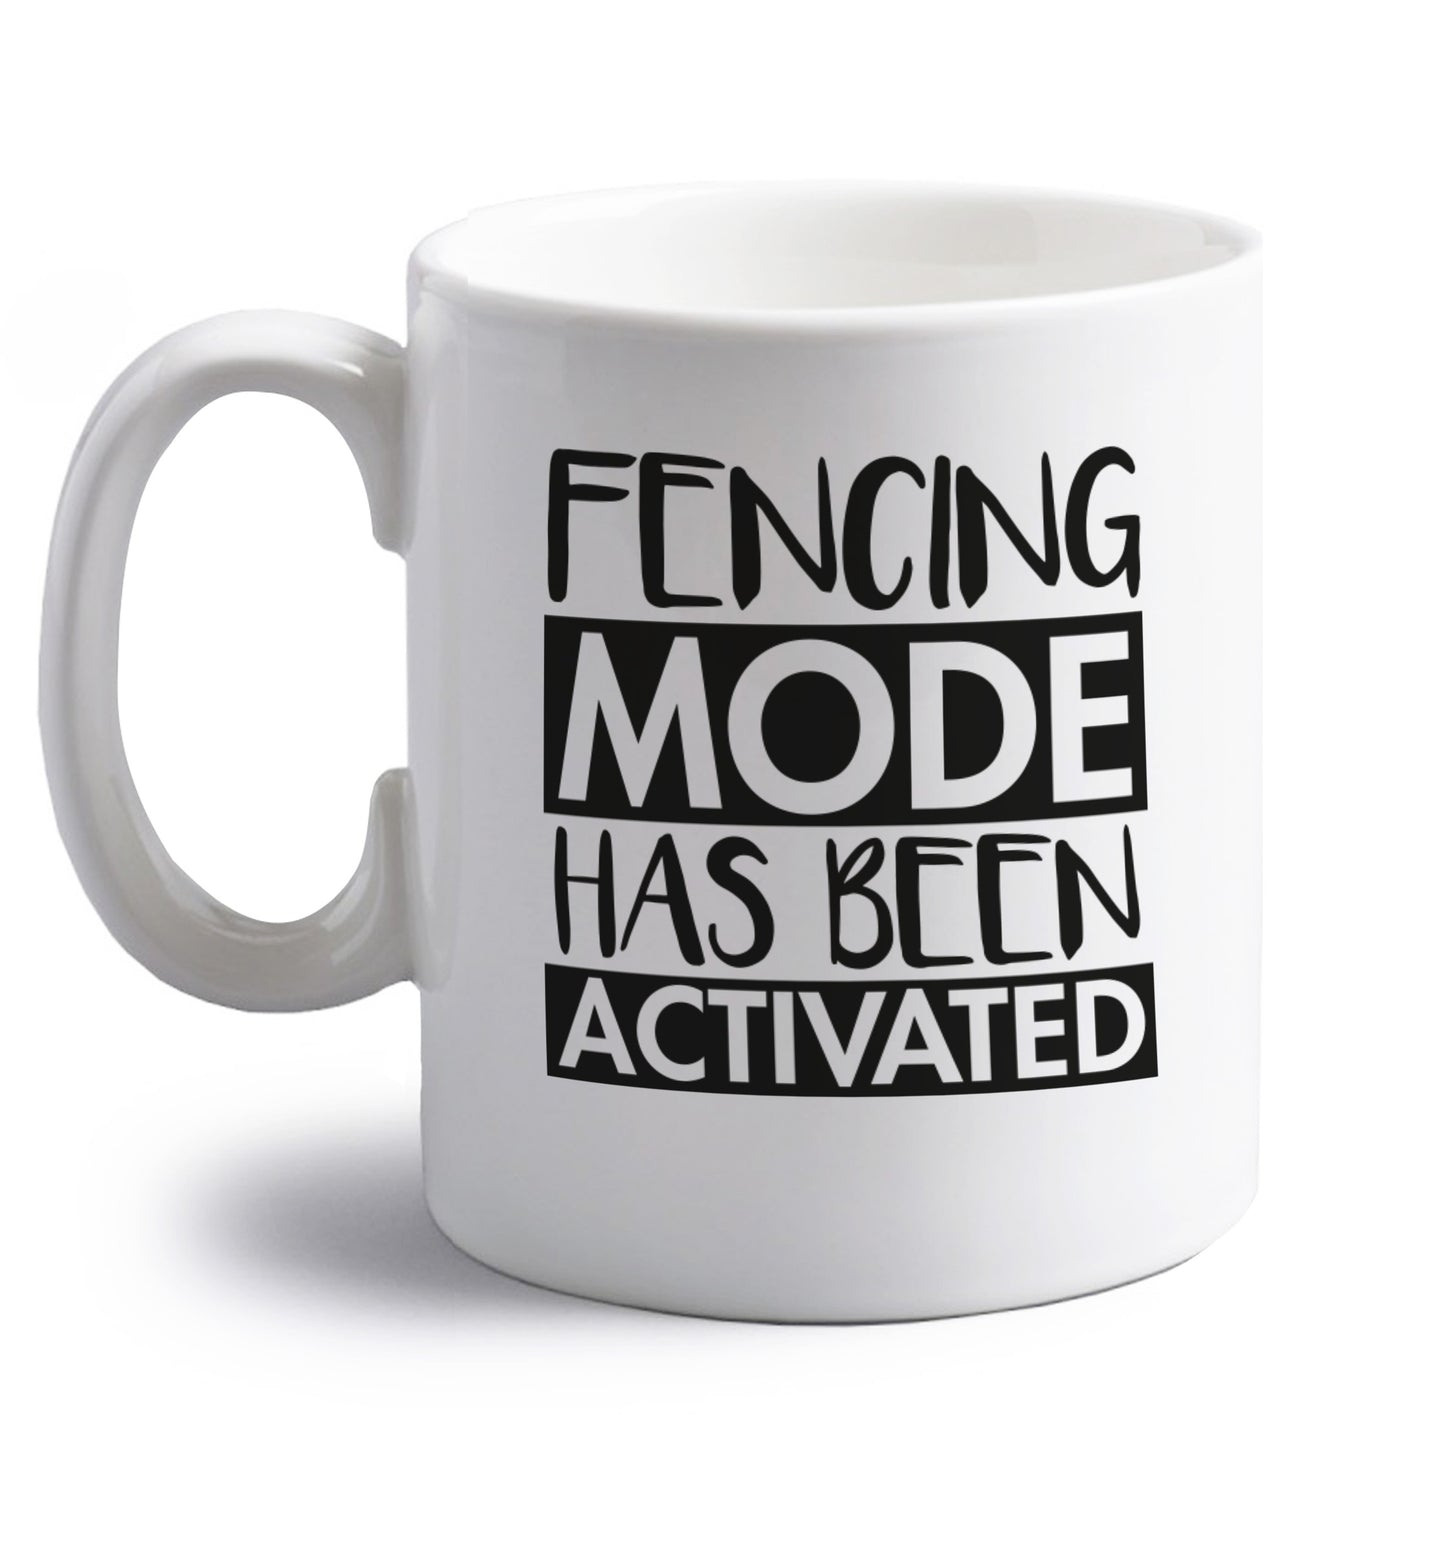 Fencing mode activated right handed white ceramic mug